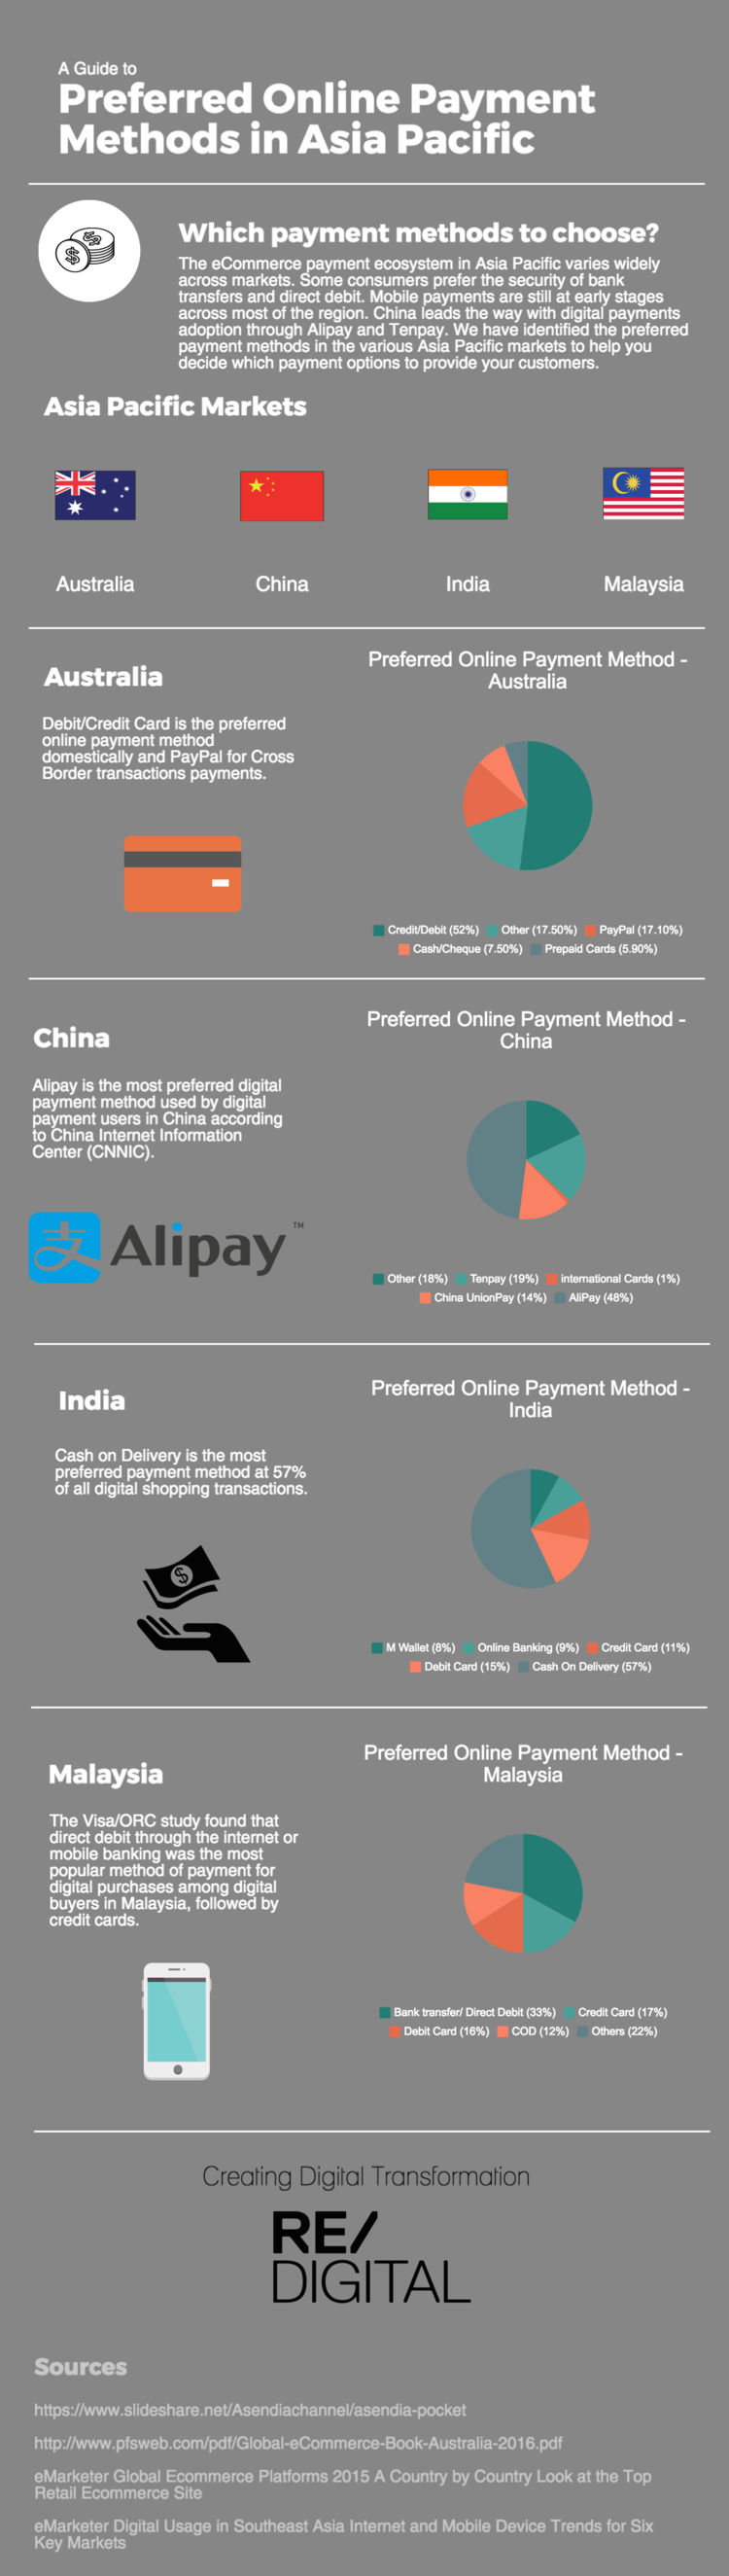 Preferred-online-payment_APAC.png